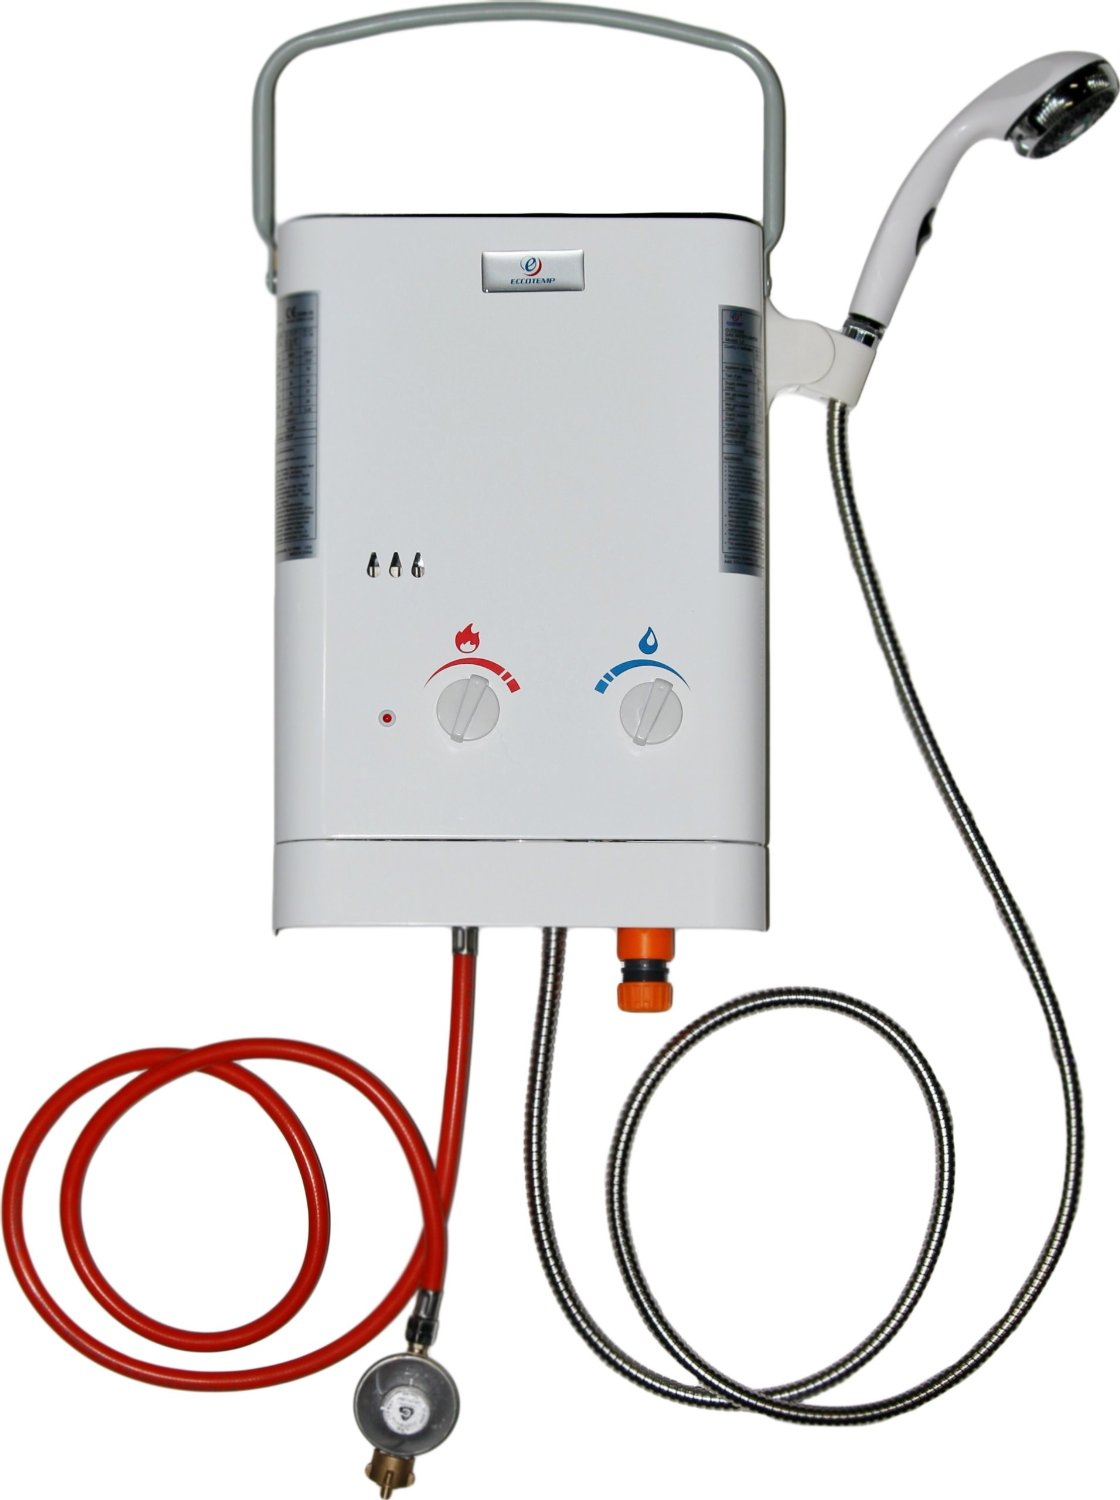 eccotemp ce l5 gas durchlauferhitzer f r den au enbereich. Black Bedroom Furniture Sets. Home Design Ideas